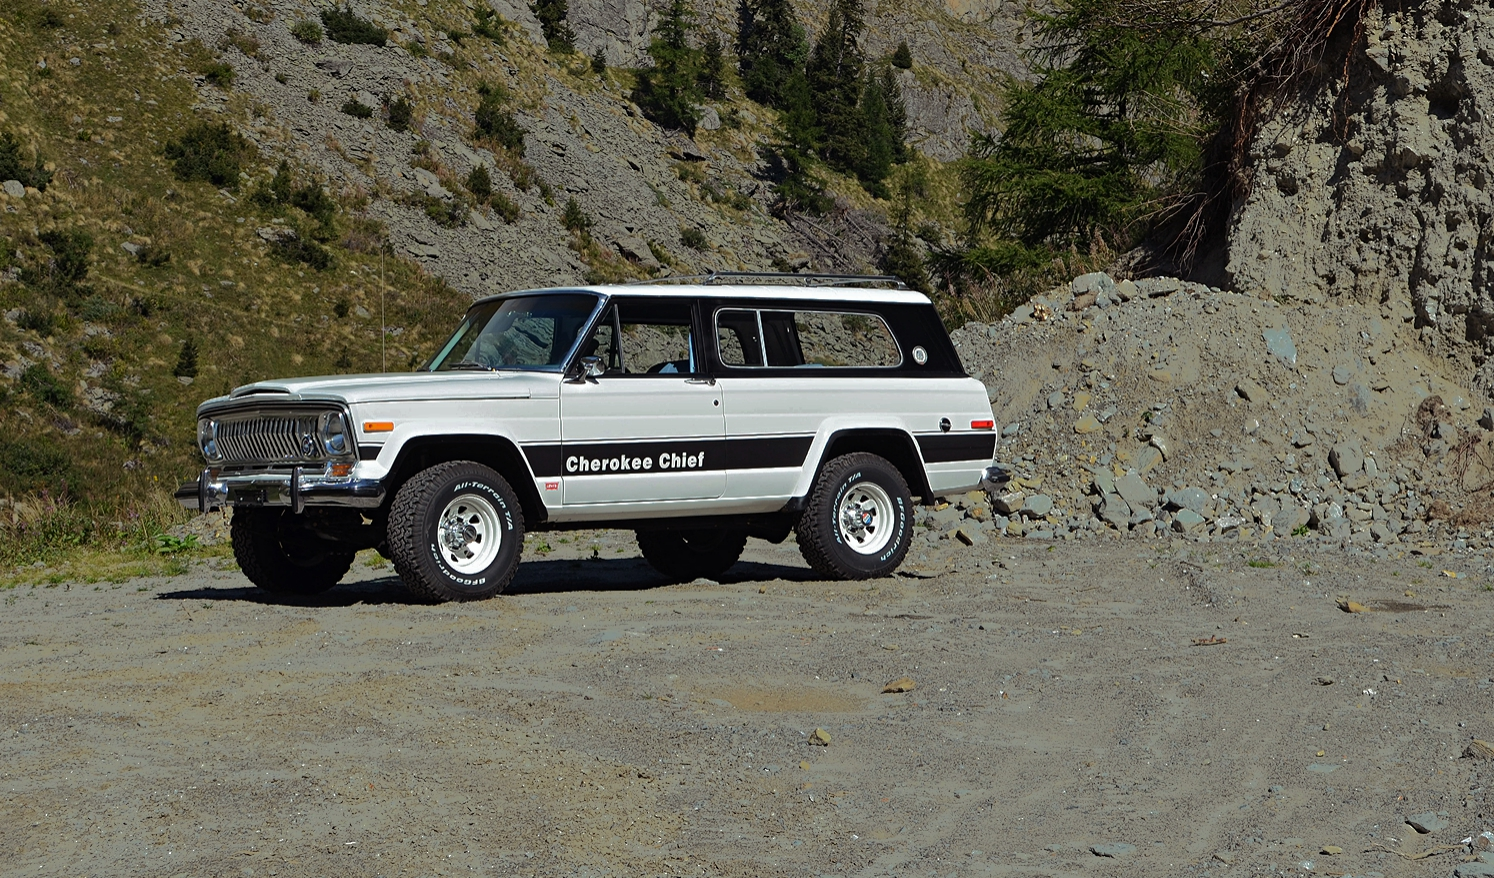 jeep-cherokee-chief-shooting-32_1.jpg